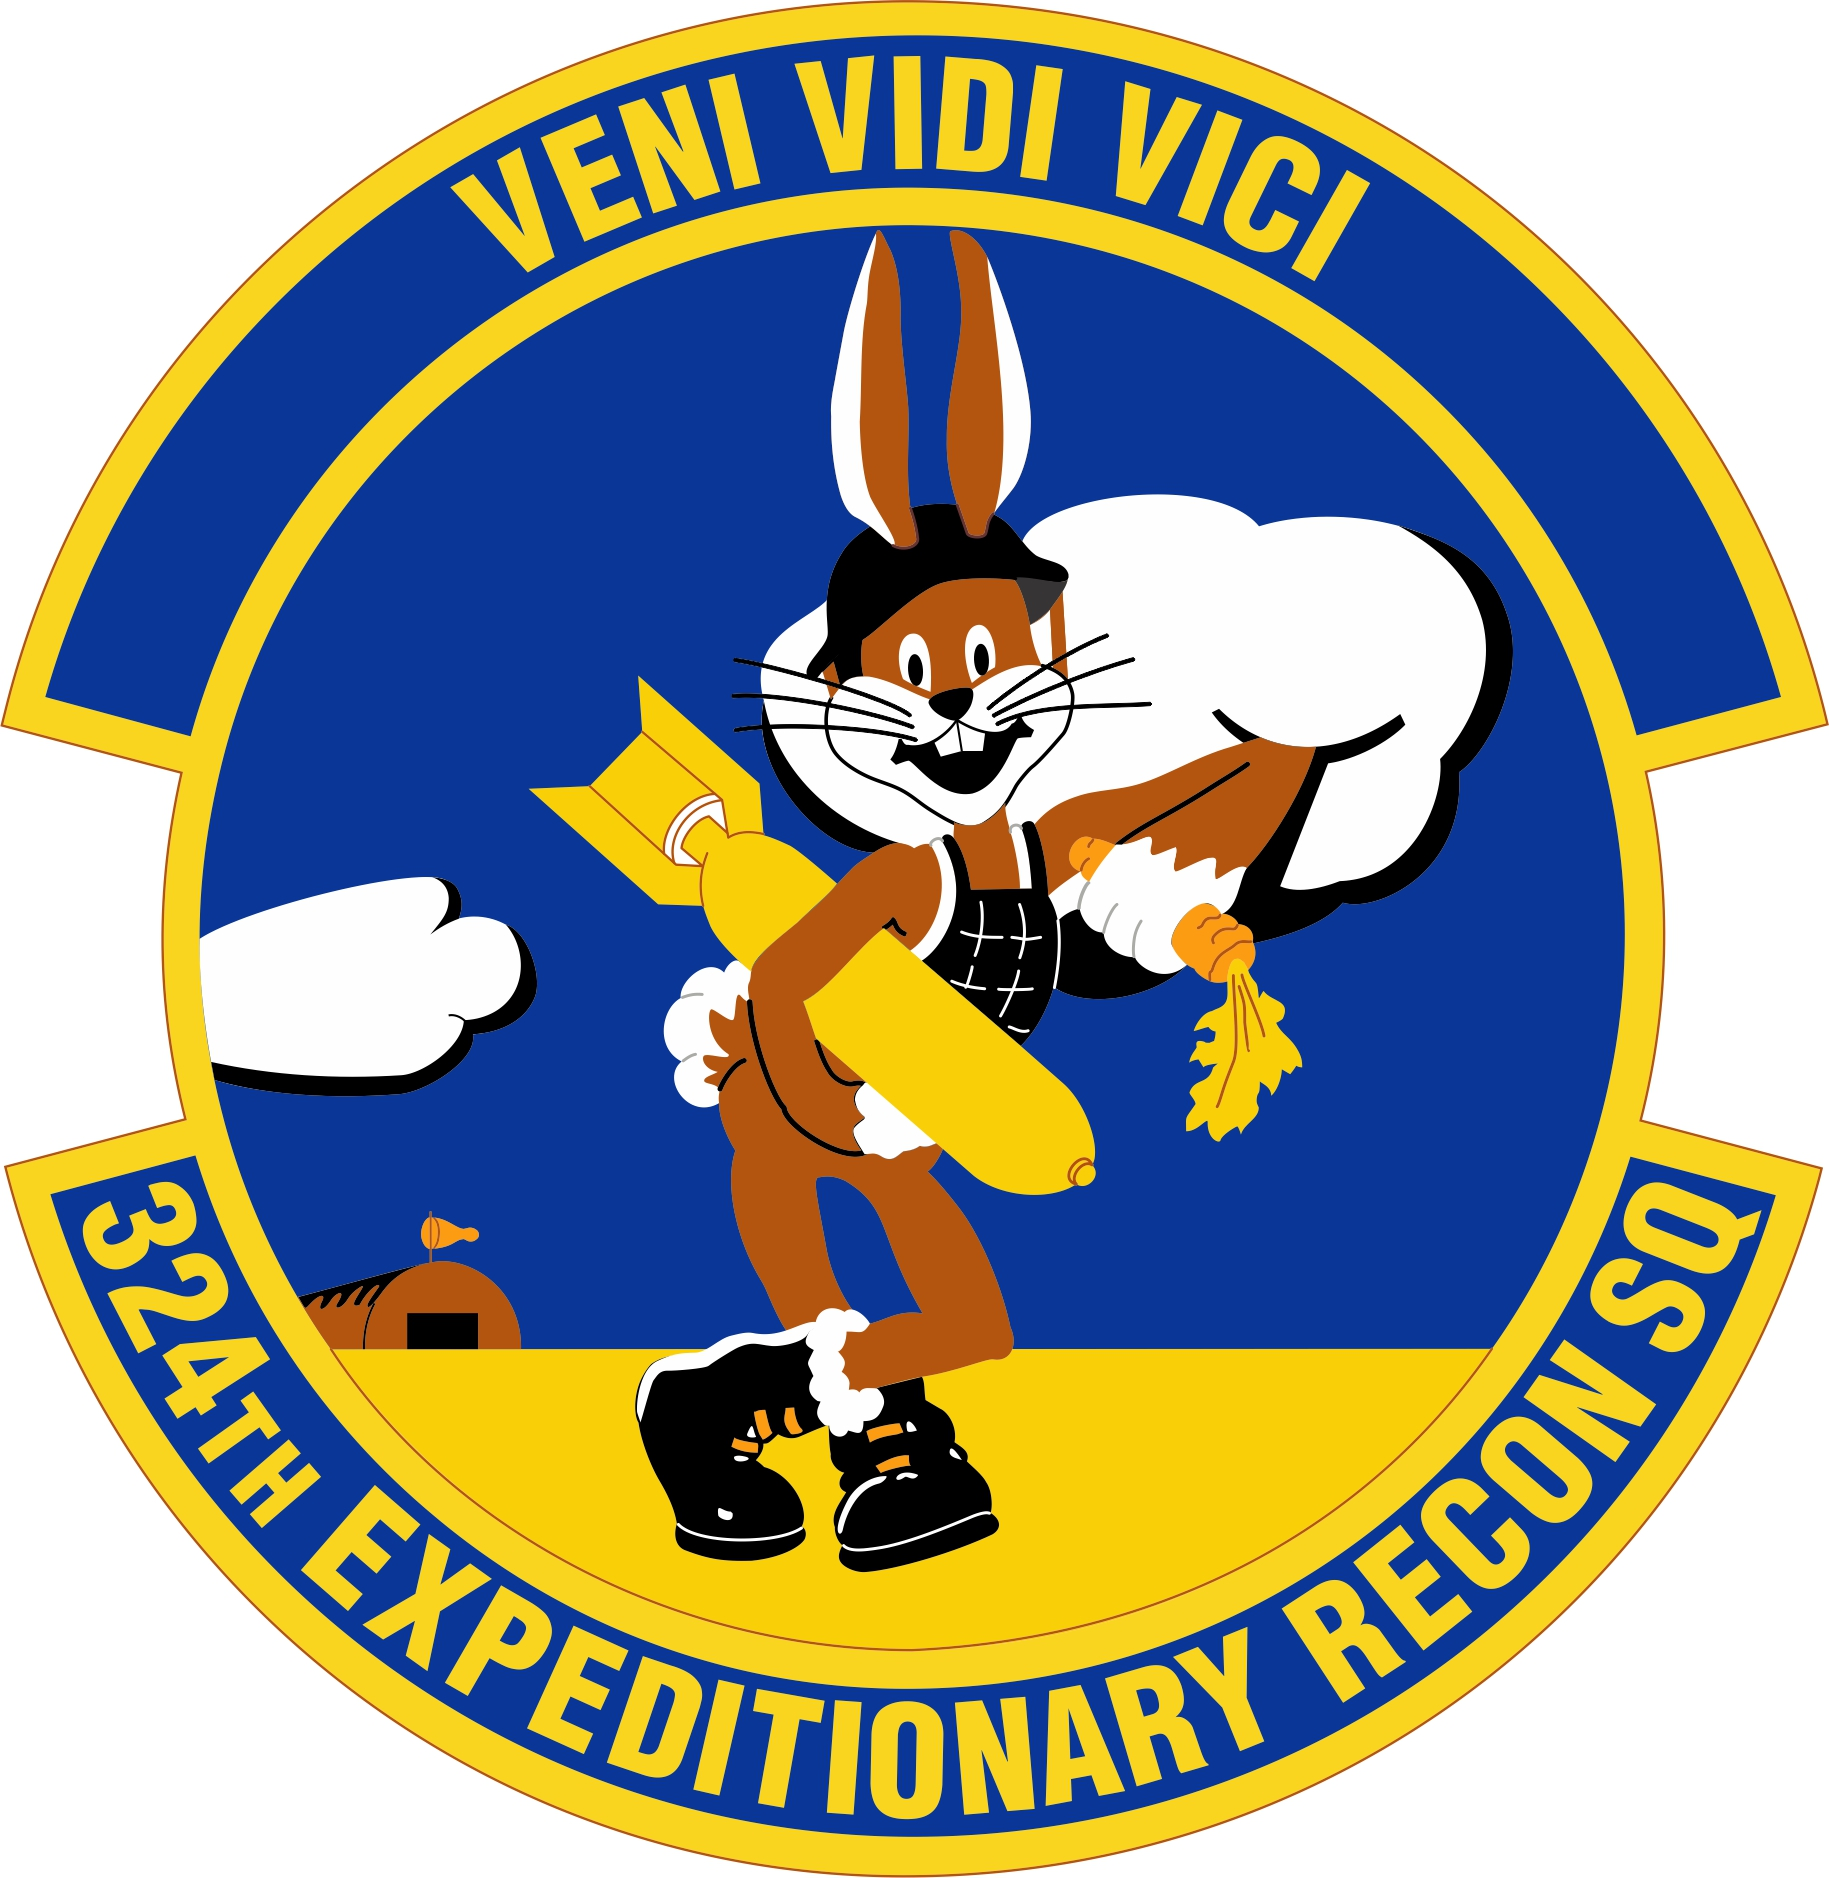 324 Expeditionary Reconnaissance Squadron (USAFE)